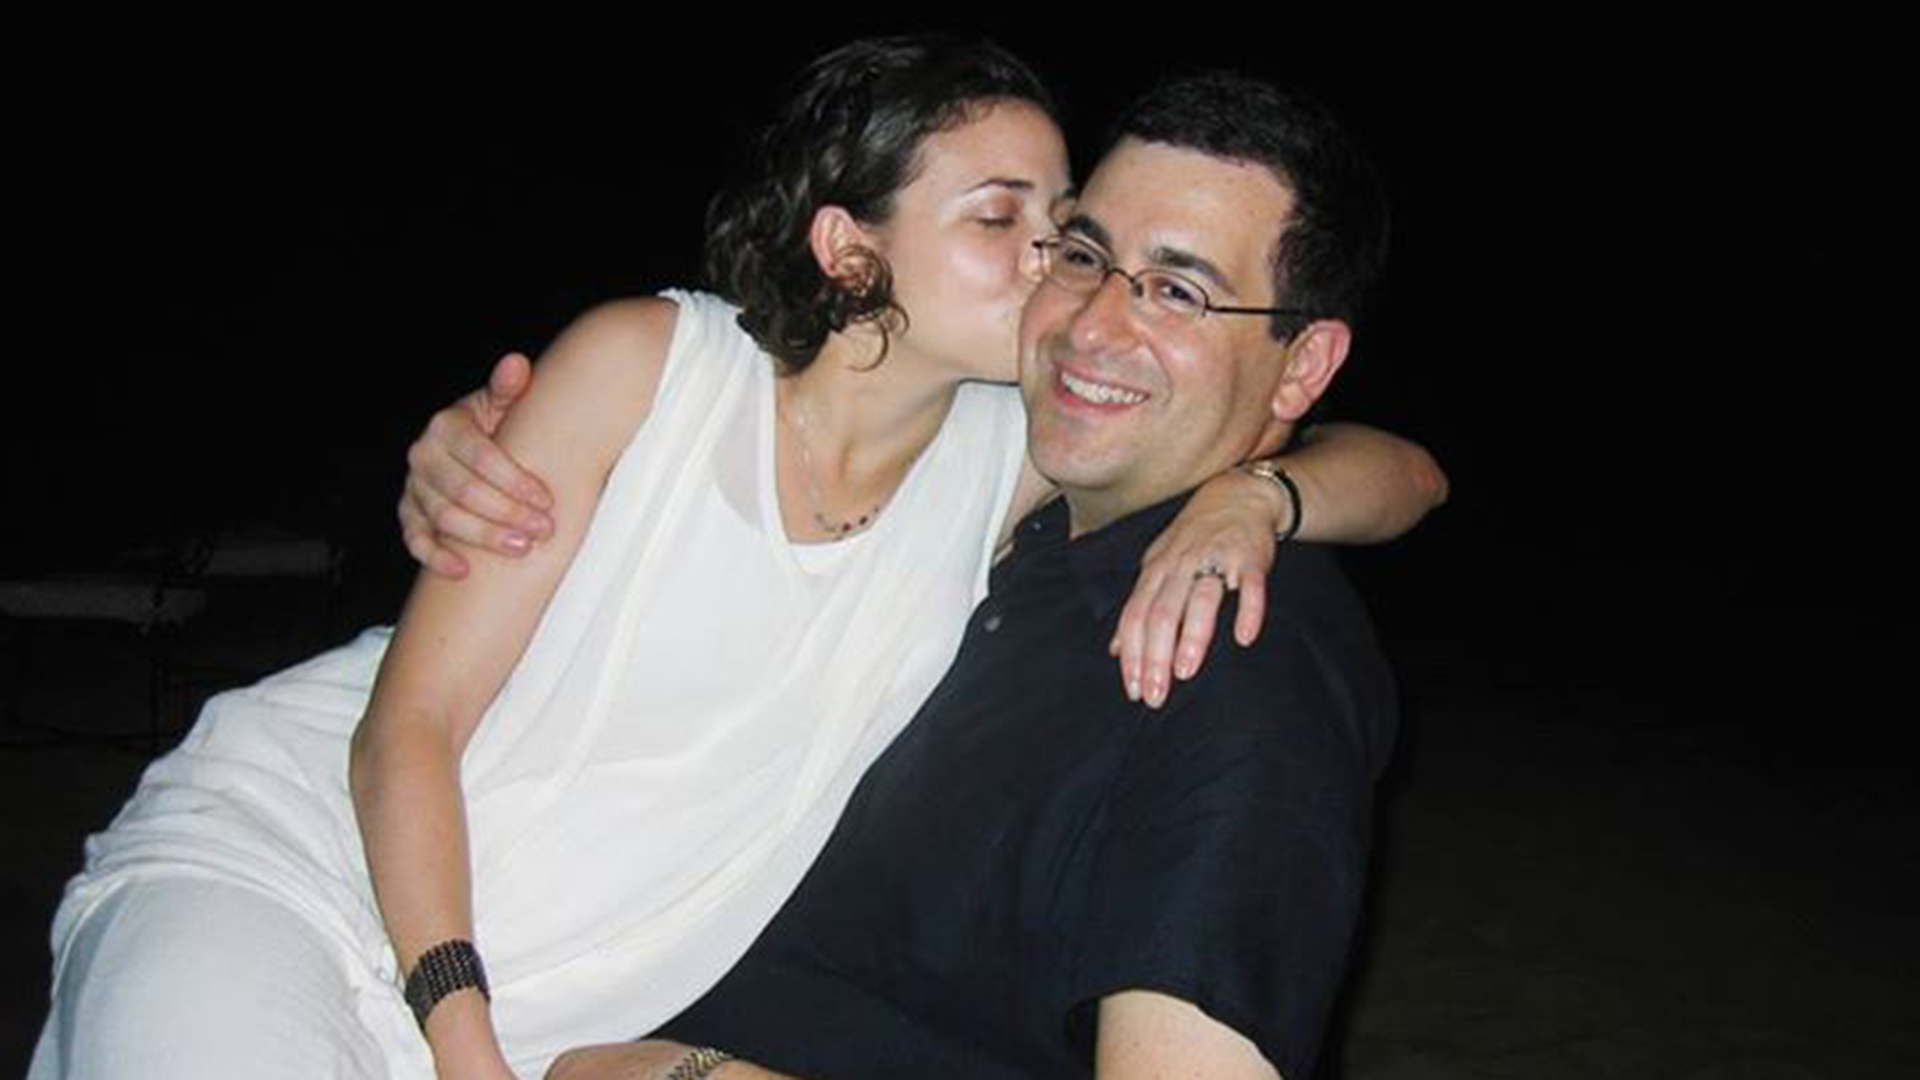 'I want to choose life:' Sheryl Sandberg mourns in ...